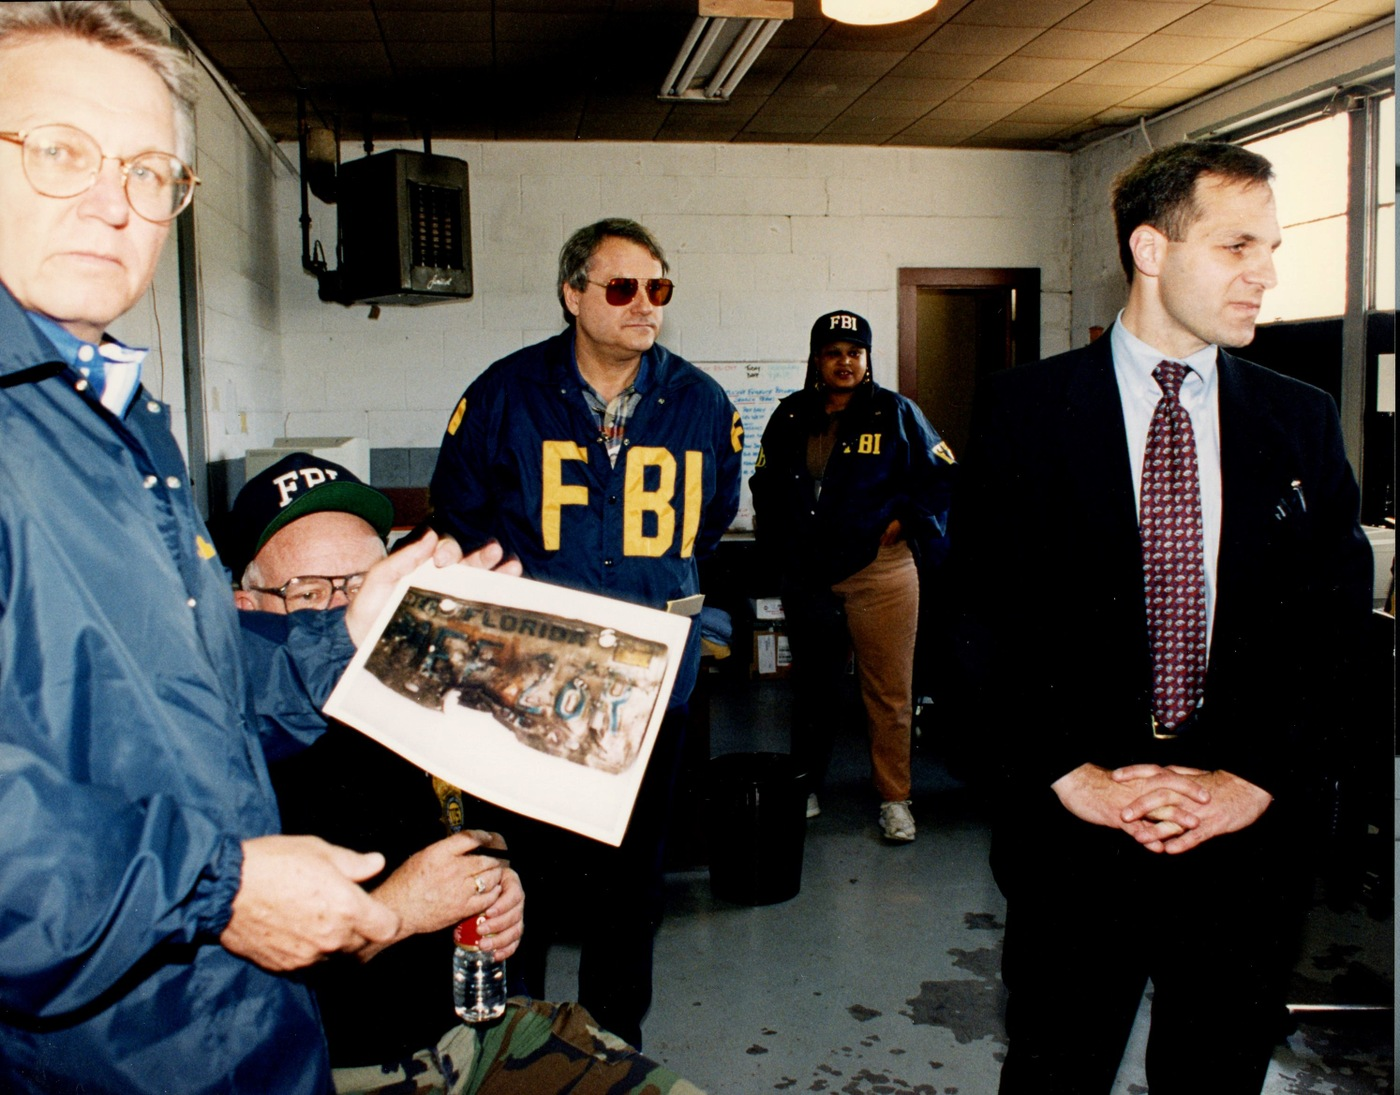 Bob Ricks (left) was the special agent in charge of the Oklahoma City Field Office in 1995. Former FBI Director Louis J. Freeh (right) visited Oklahoma City after the bombing.